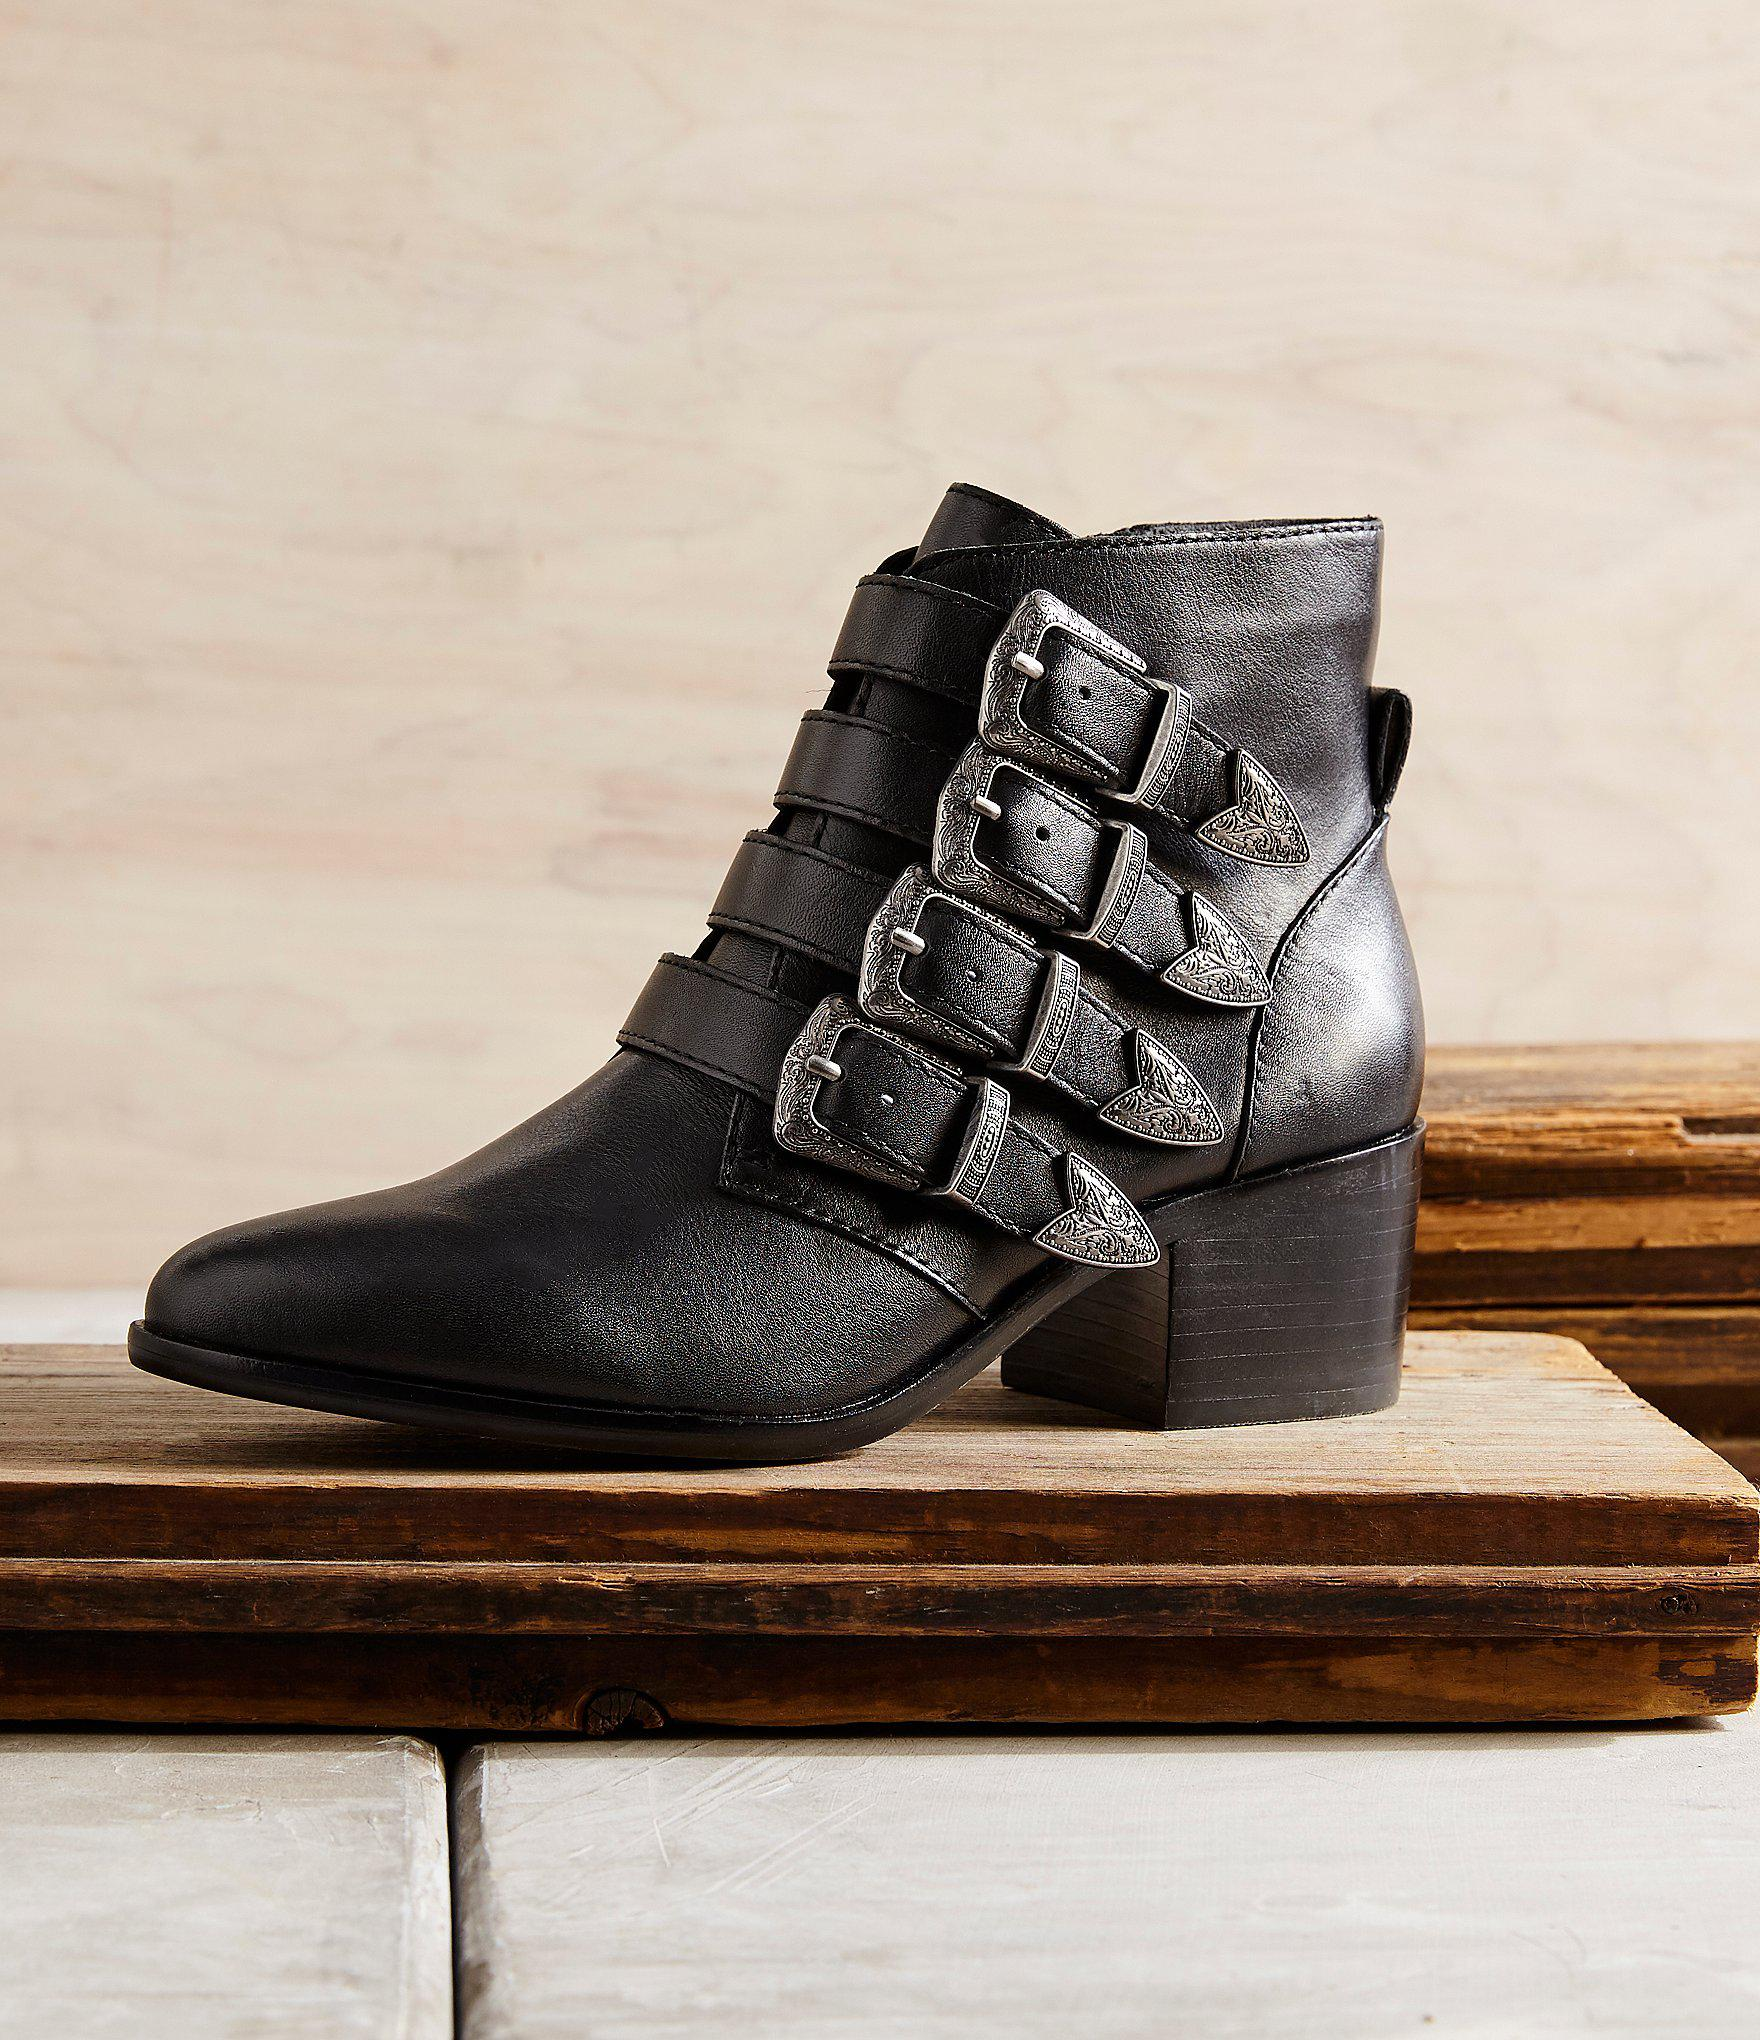 e548a2e9e6d Lyst - Steve Madden Billey Leather Western Buckle Detail Booties